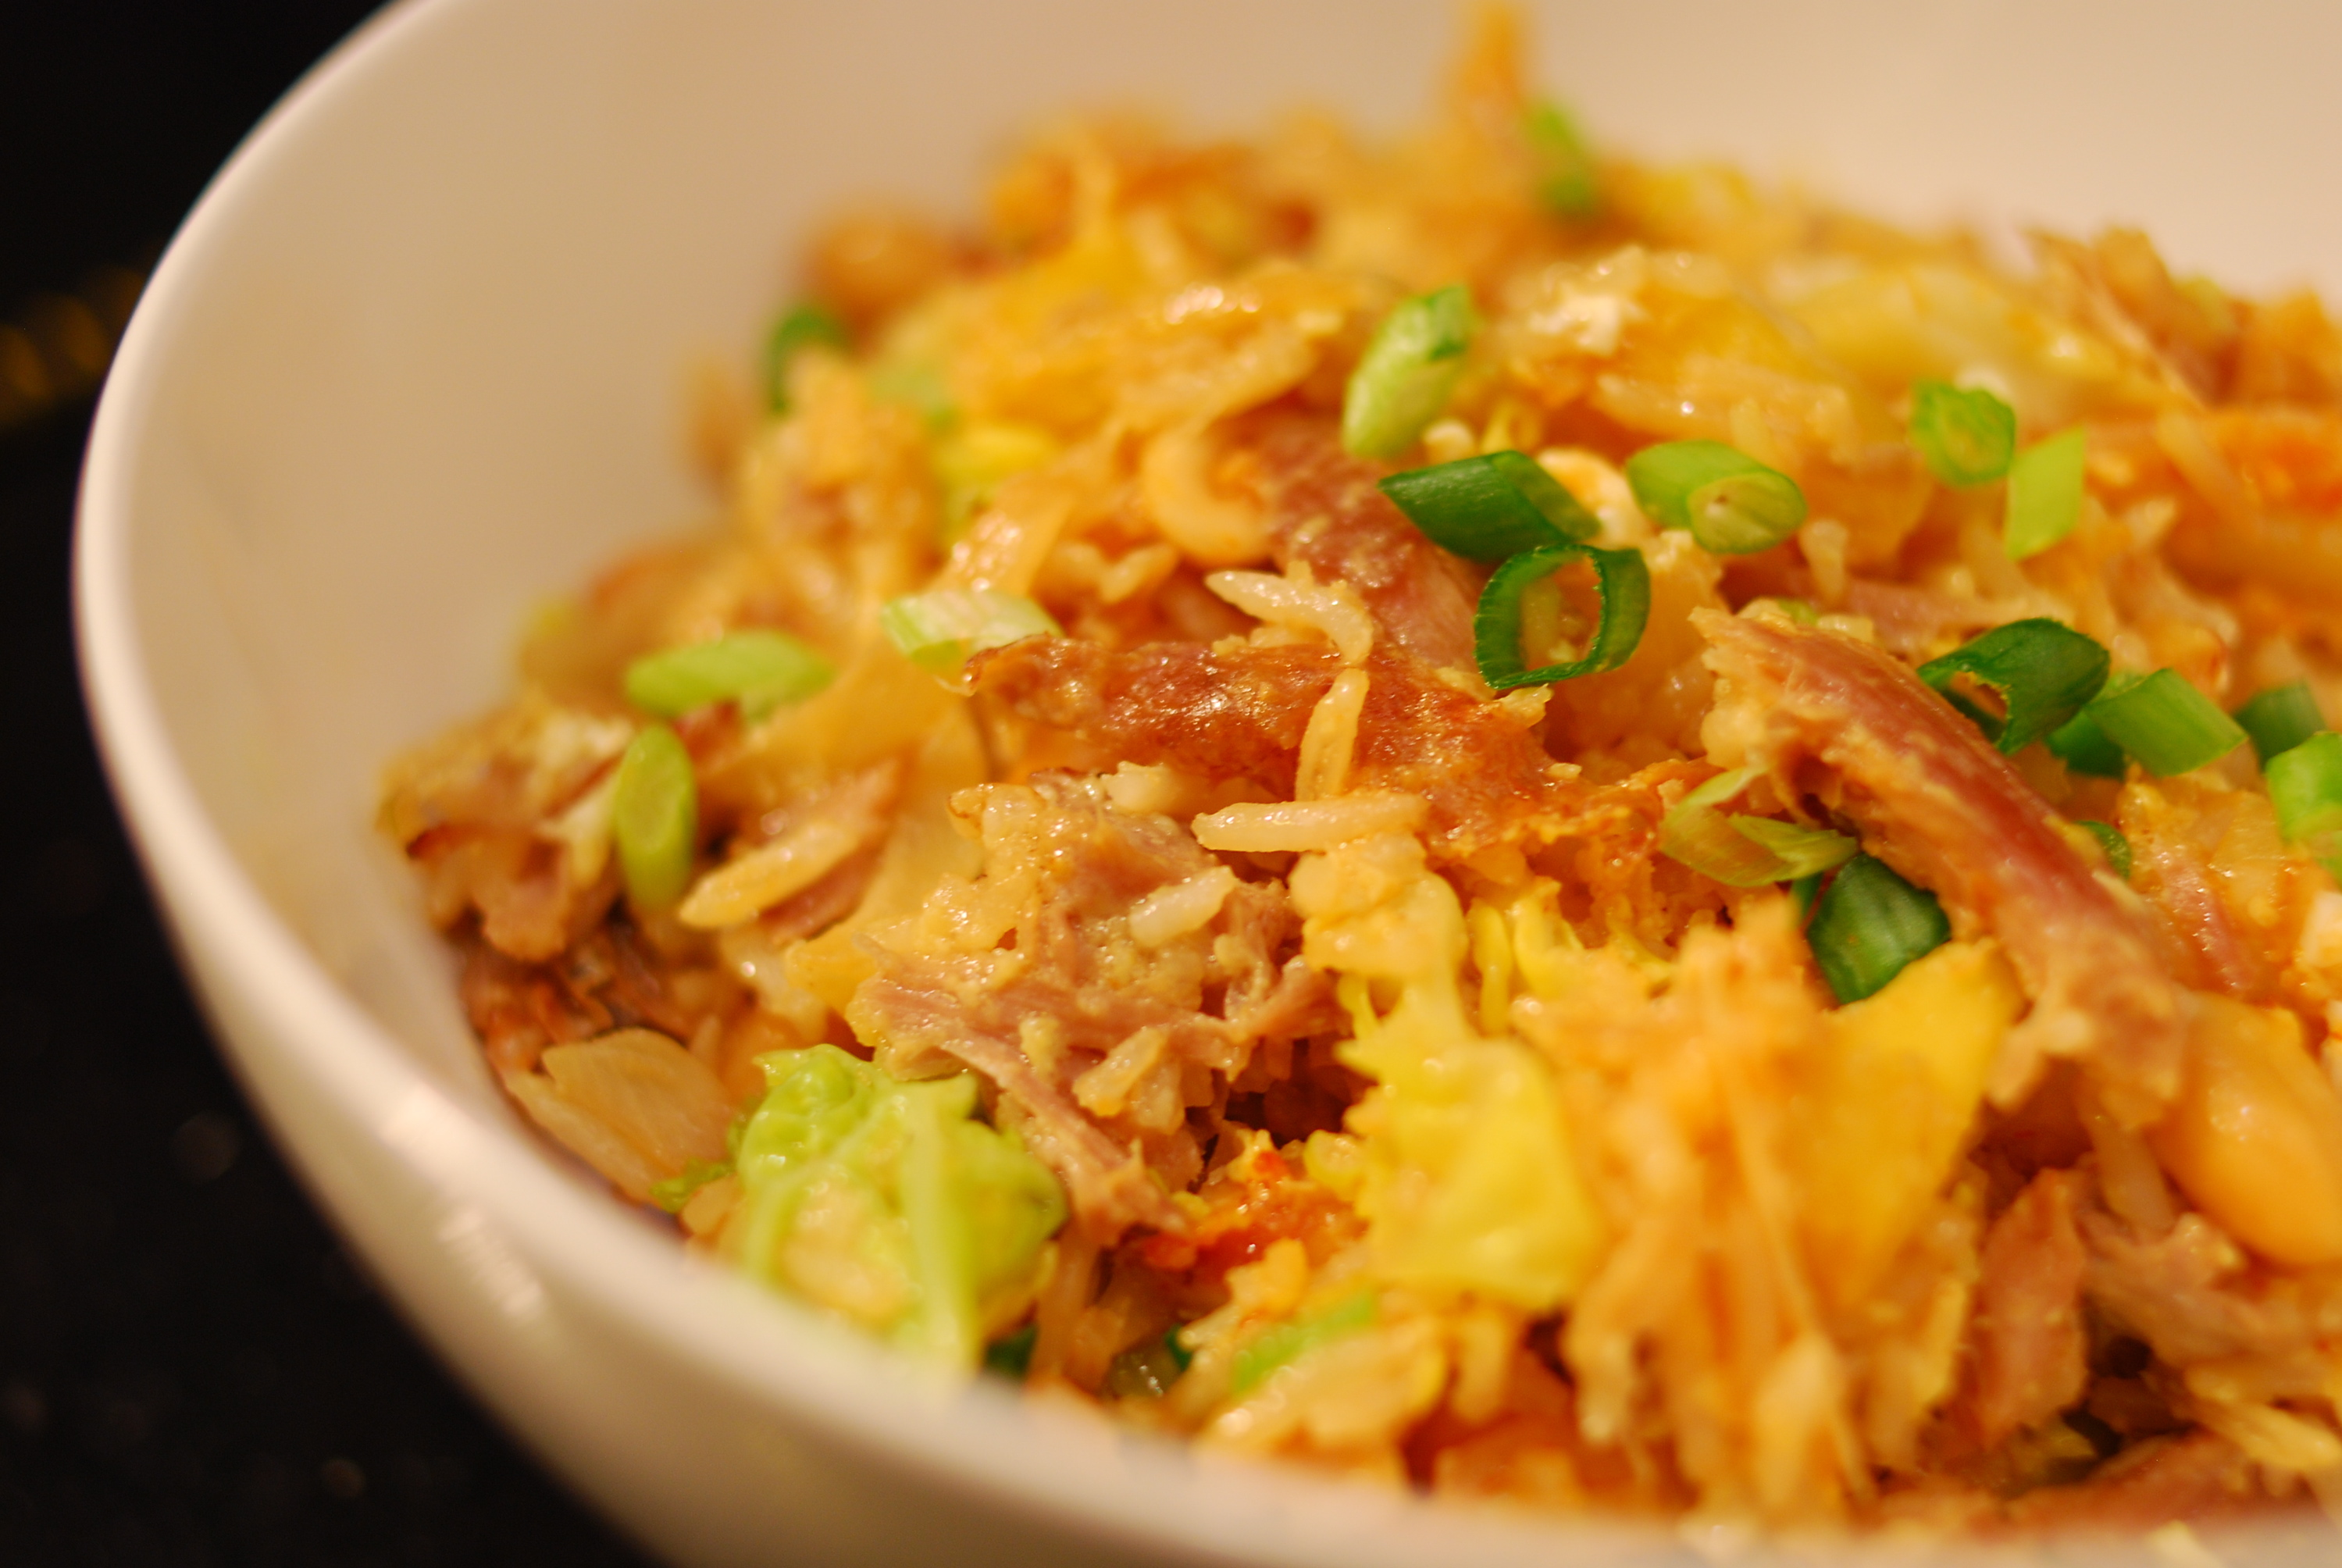 Turkey Pineapple Fried Rice